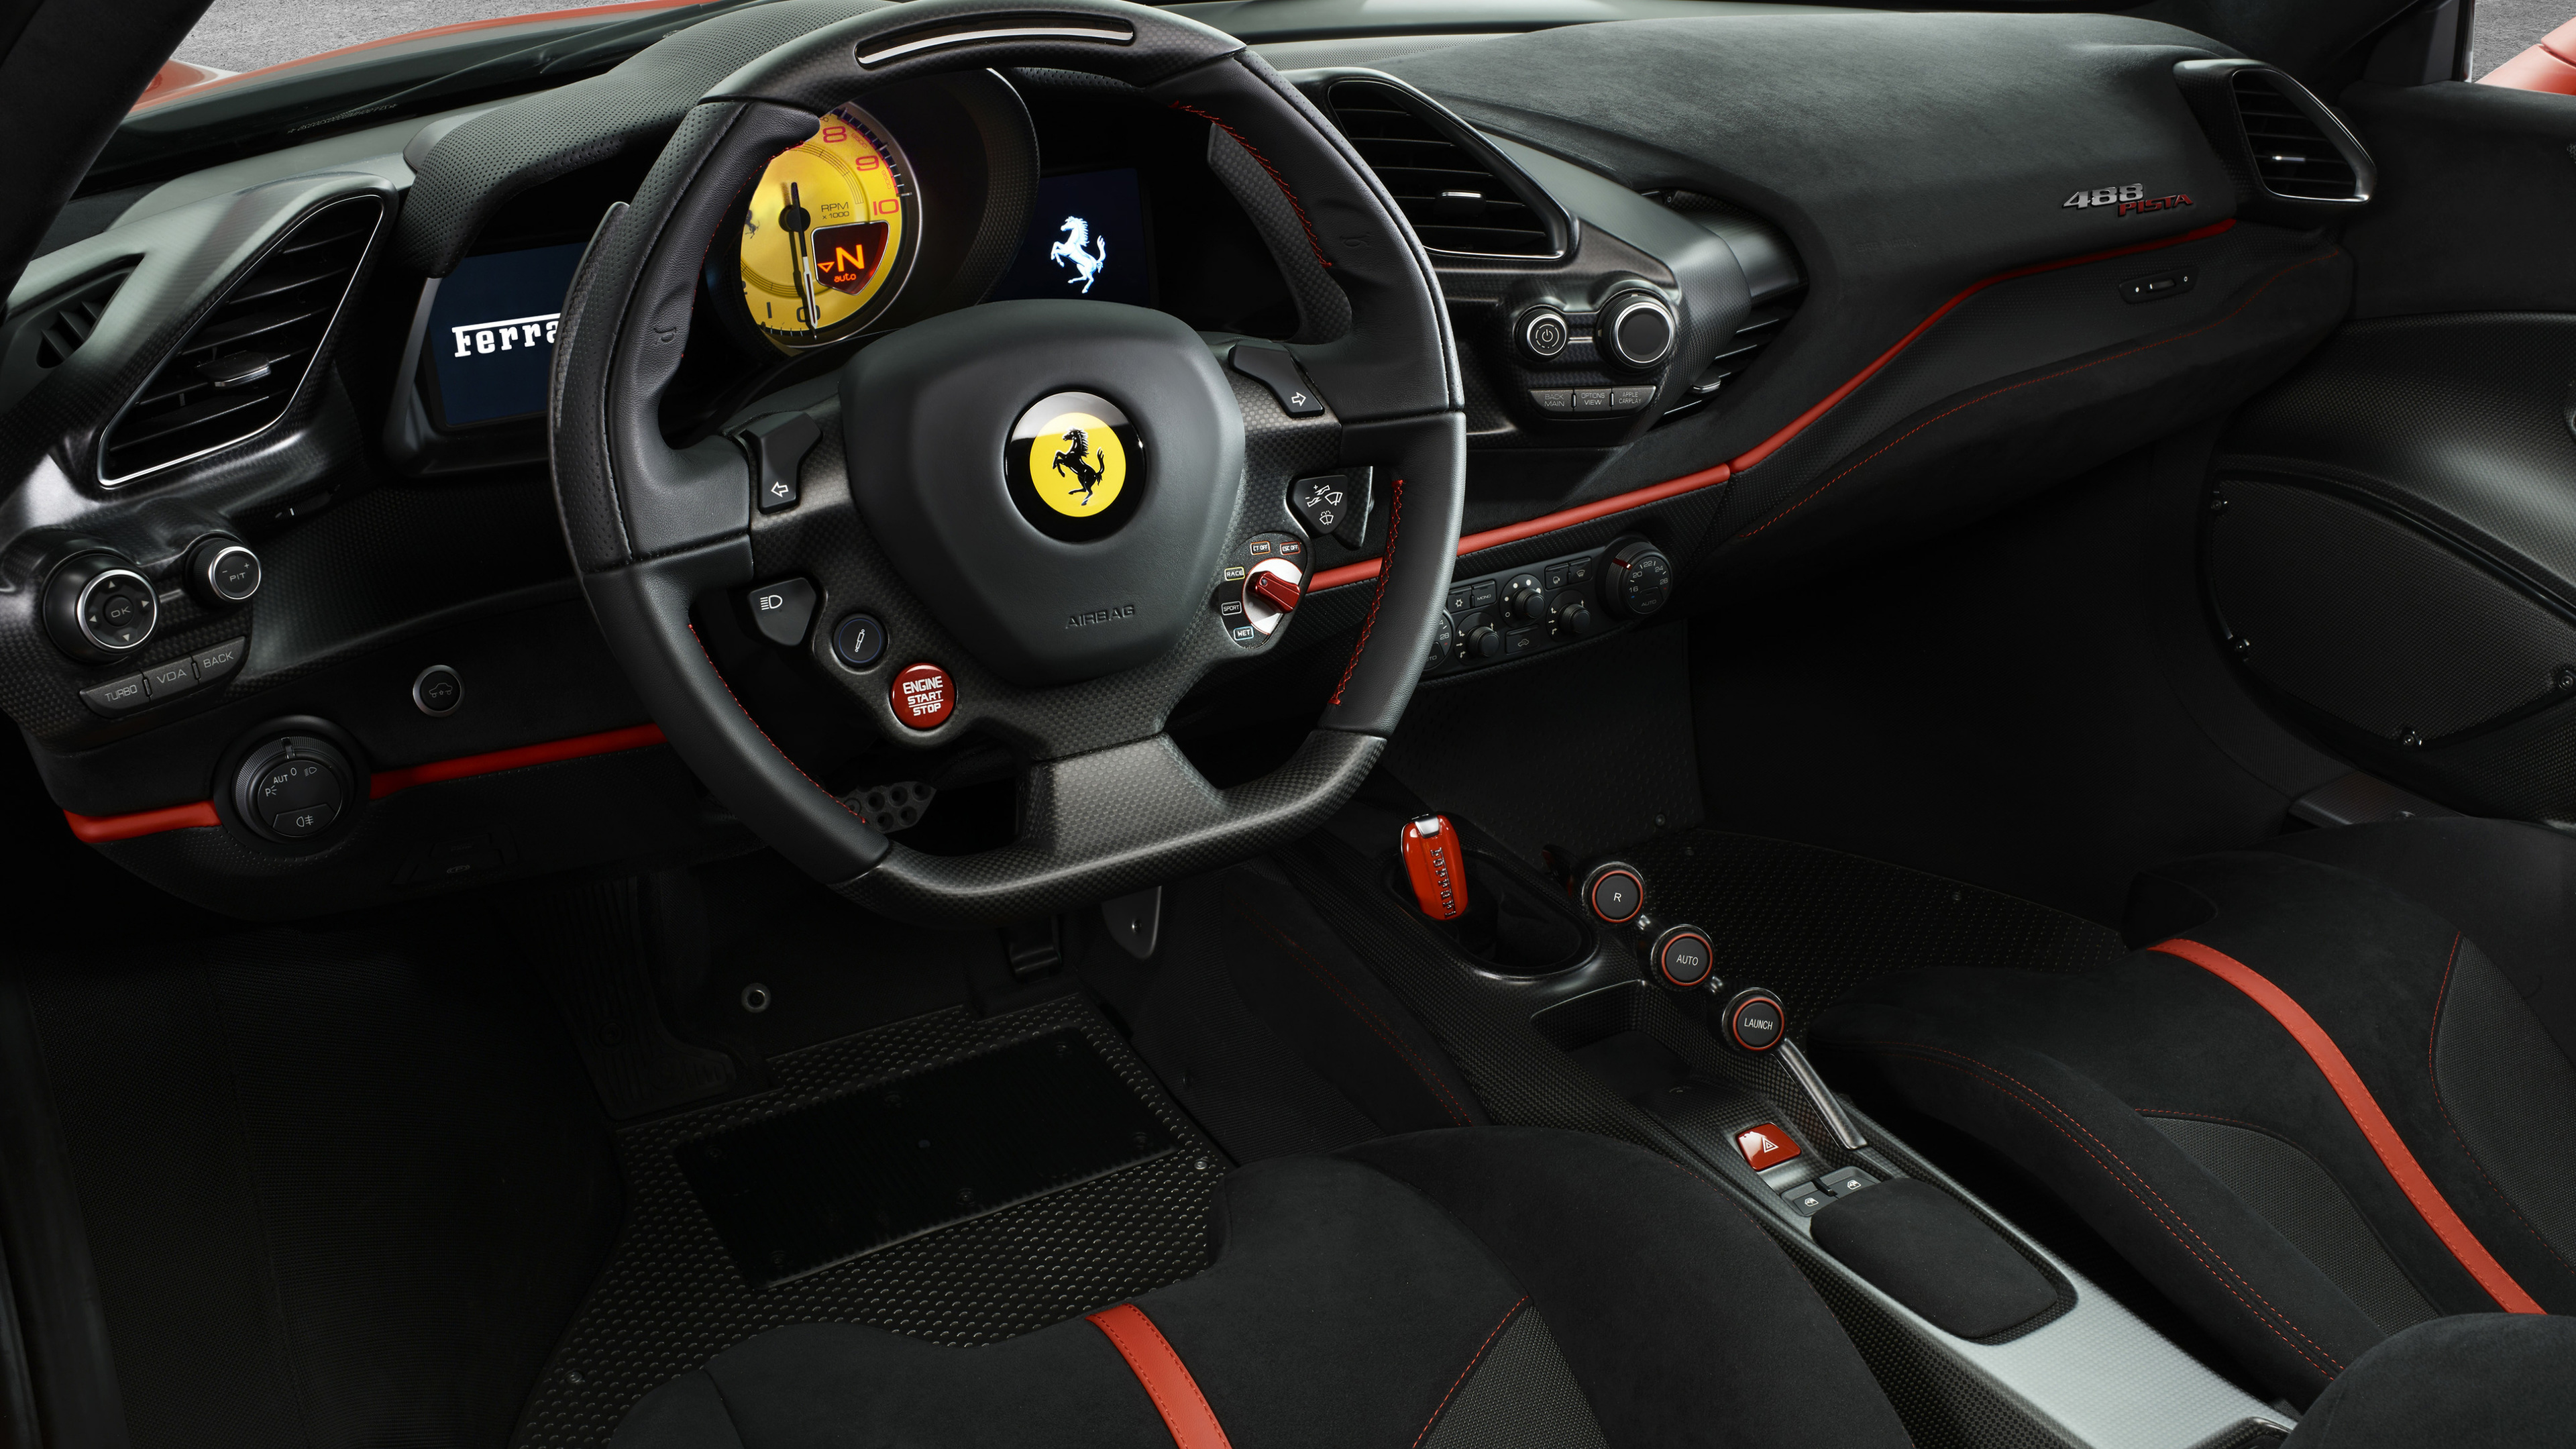 Wallpaper 4k Ferrari 488 Pista Interior 4k 2018 Cars Wallpapers 4k